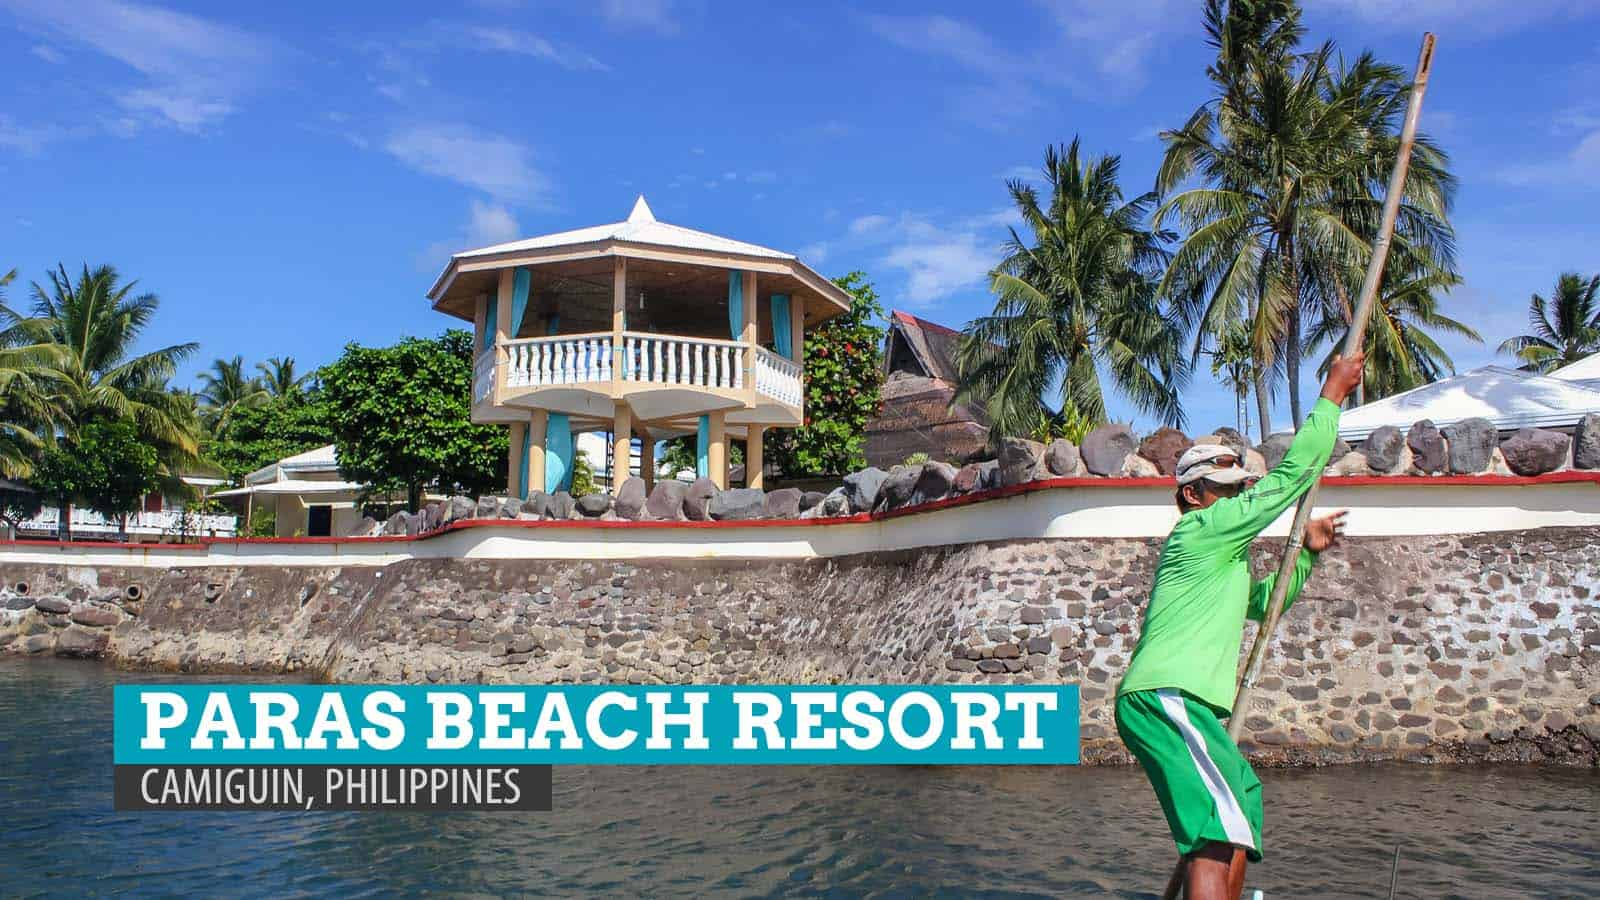 Paras Beach Resort Where To Stay In Camiguin Philippines Splurge Option